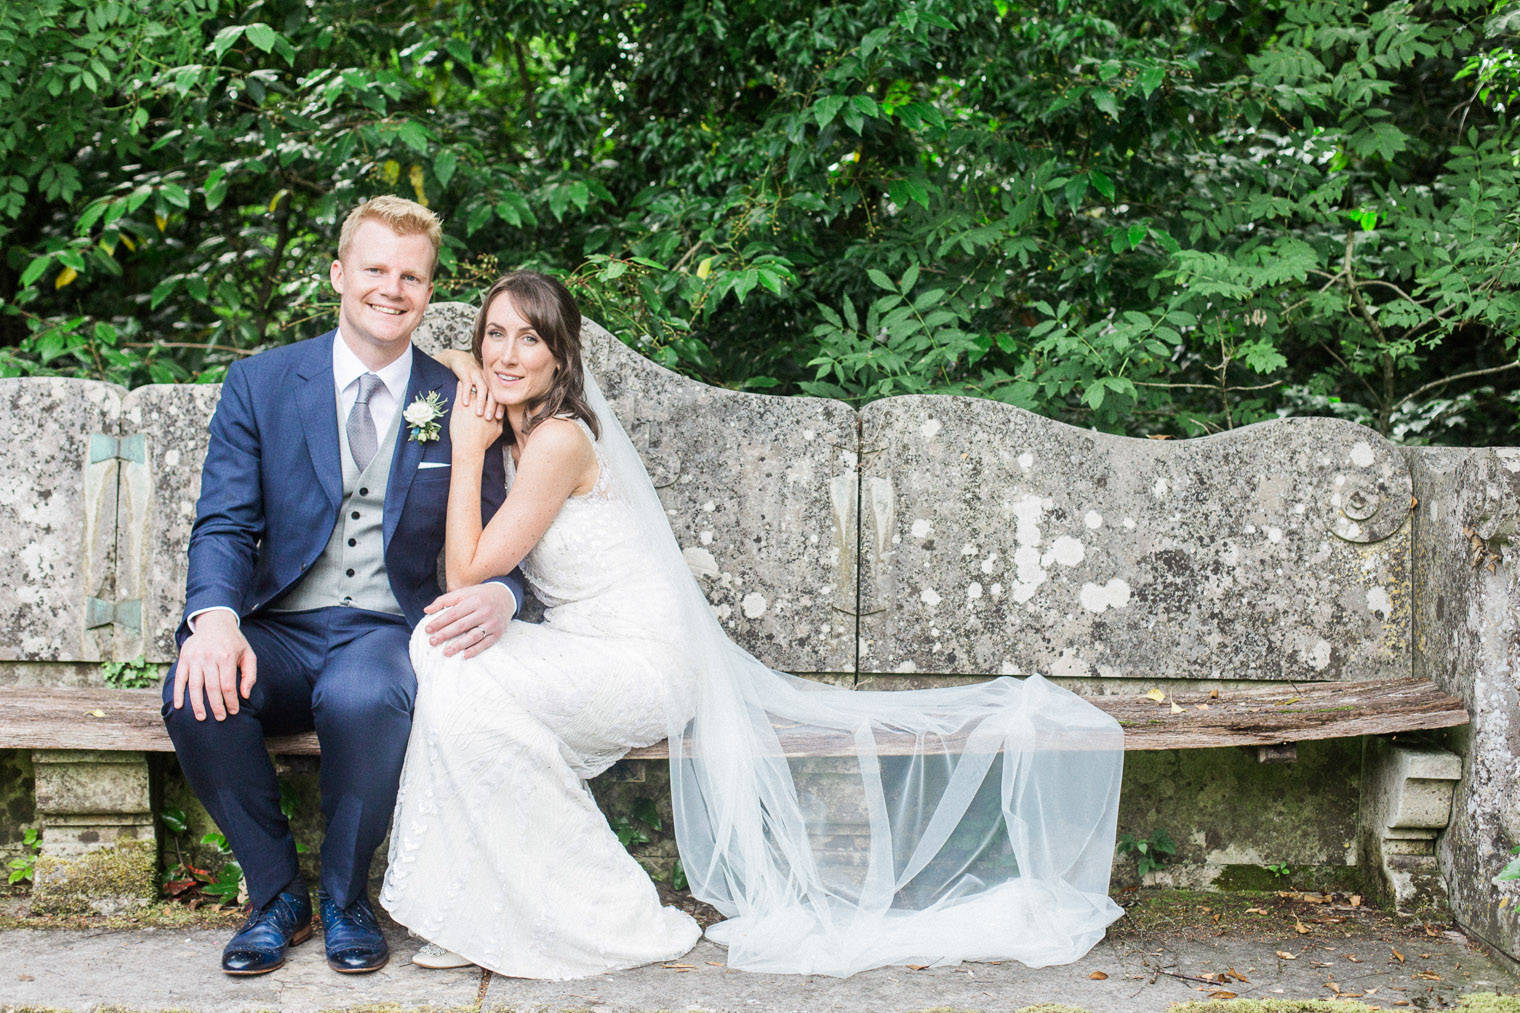 lifestyle-blogger-claire-wainwright-of-the-green-eyed-girl-shares-her-wedding-48